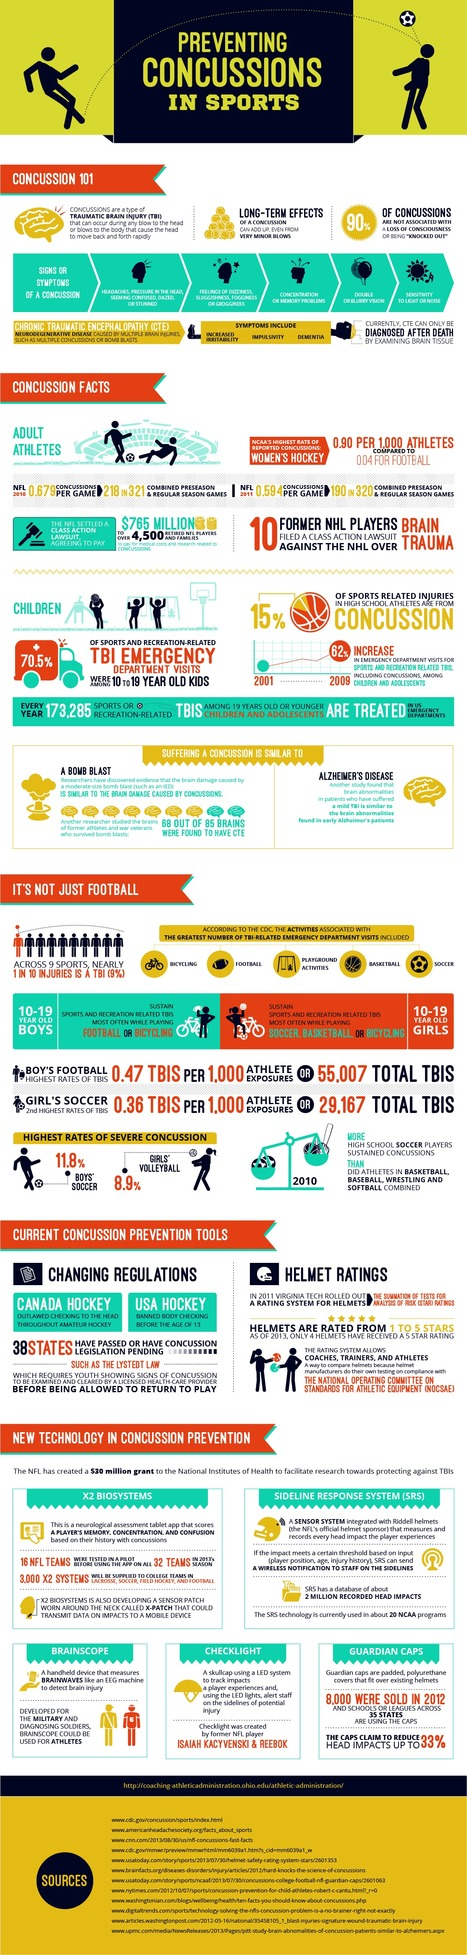 Preventing Concussions in Sports | Best Infographics | Scoop.it